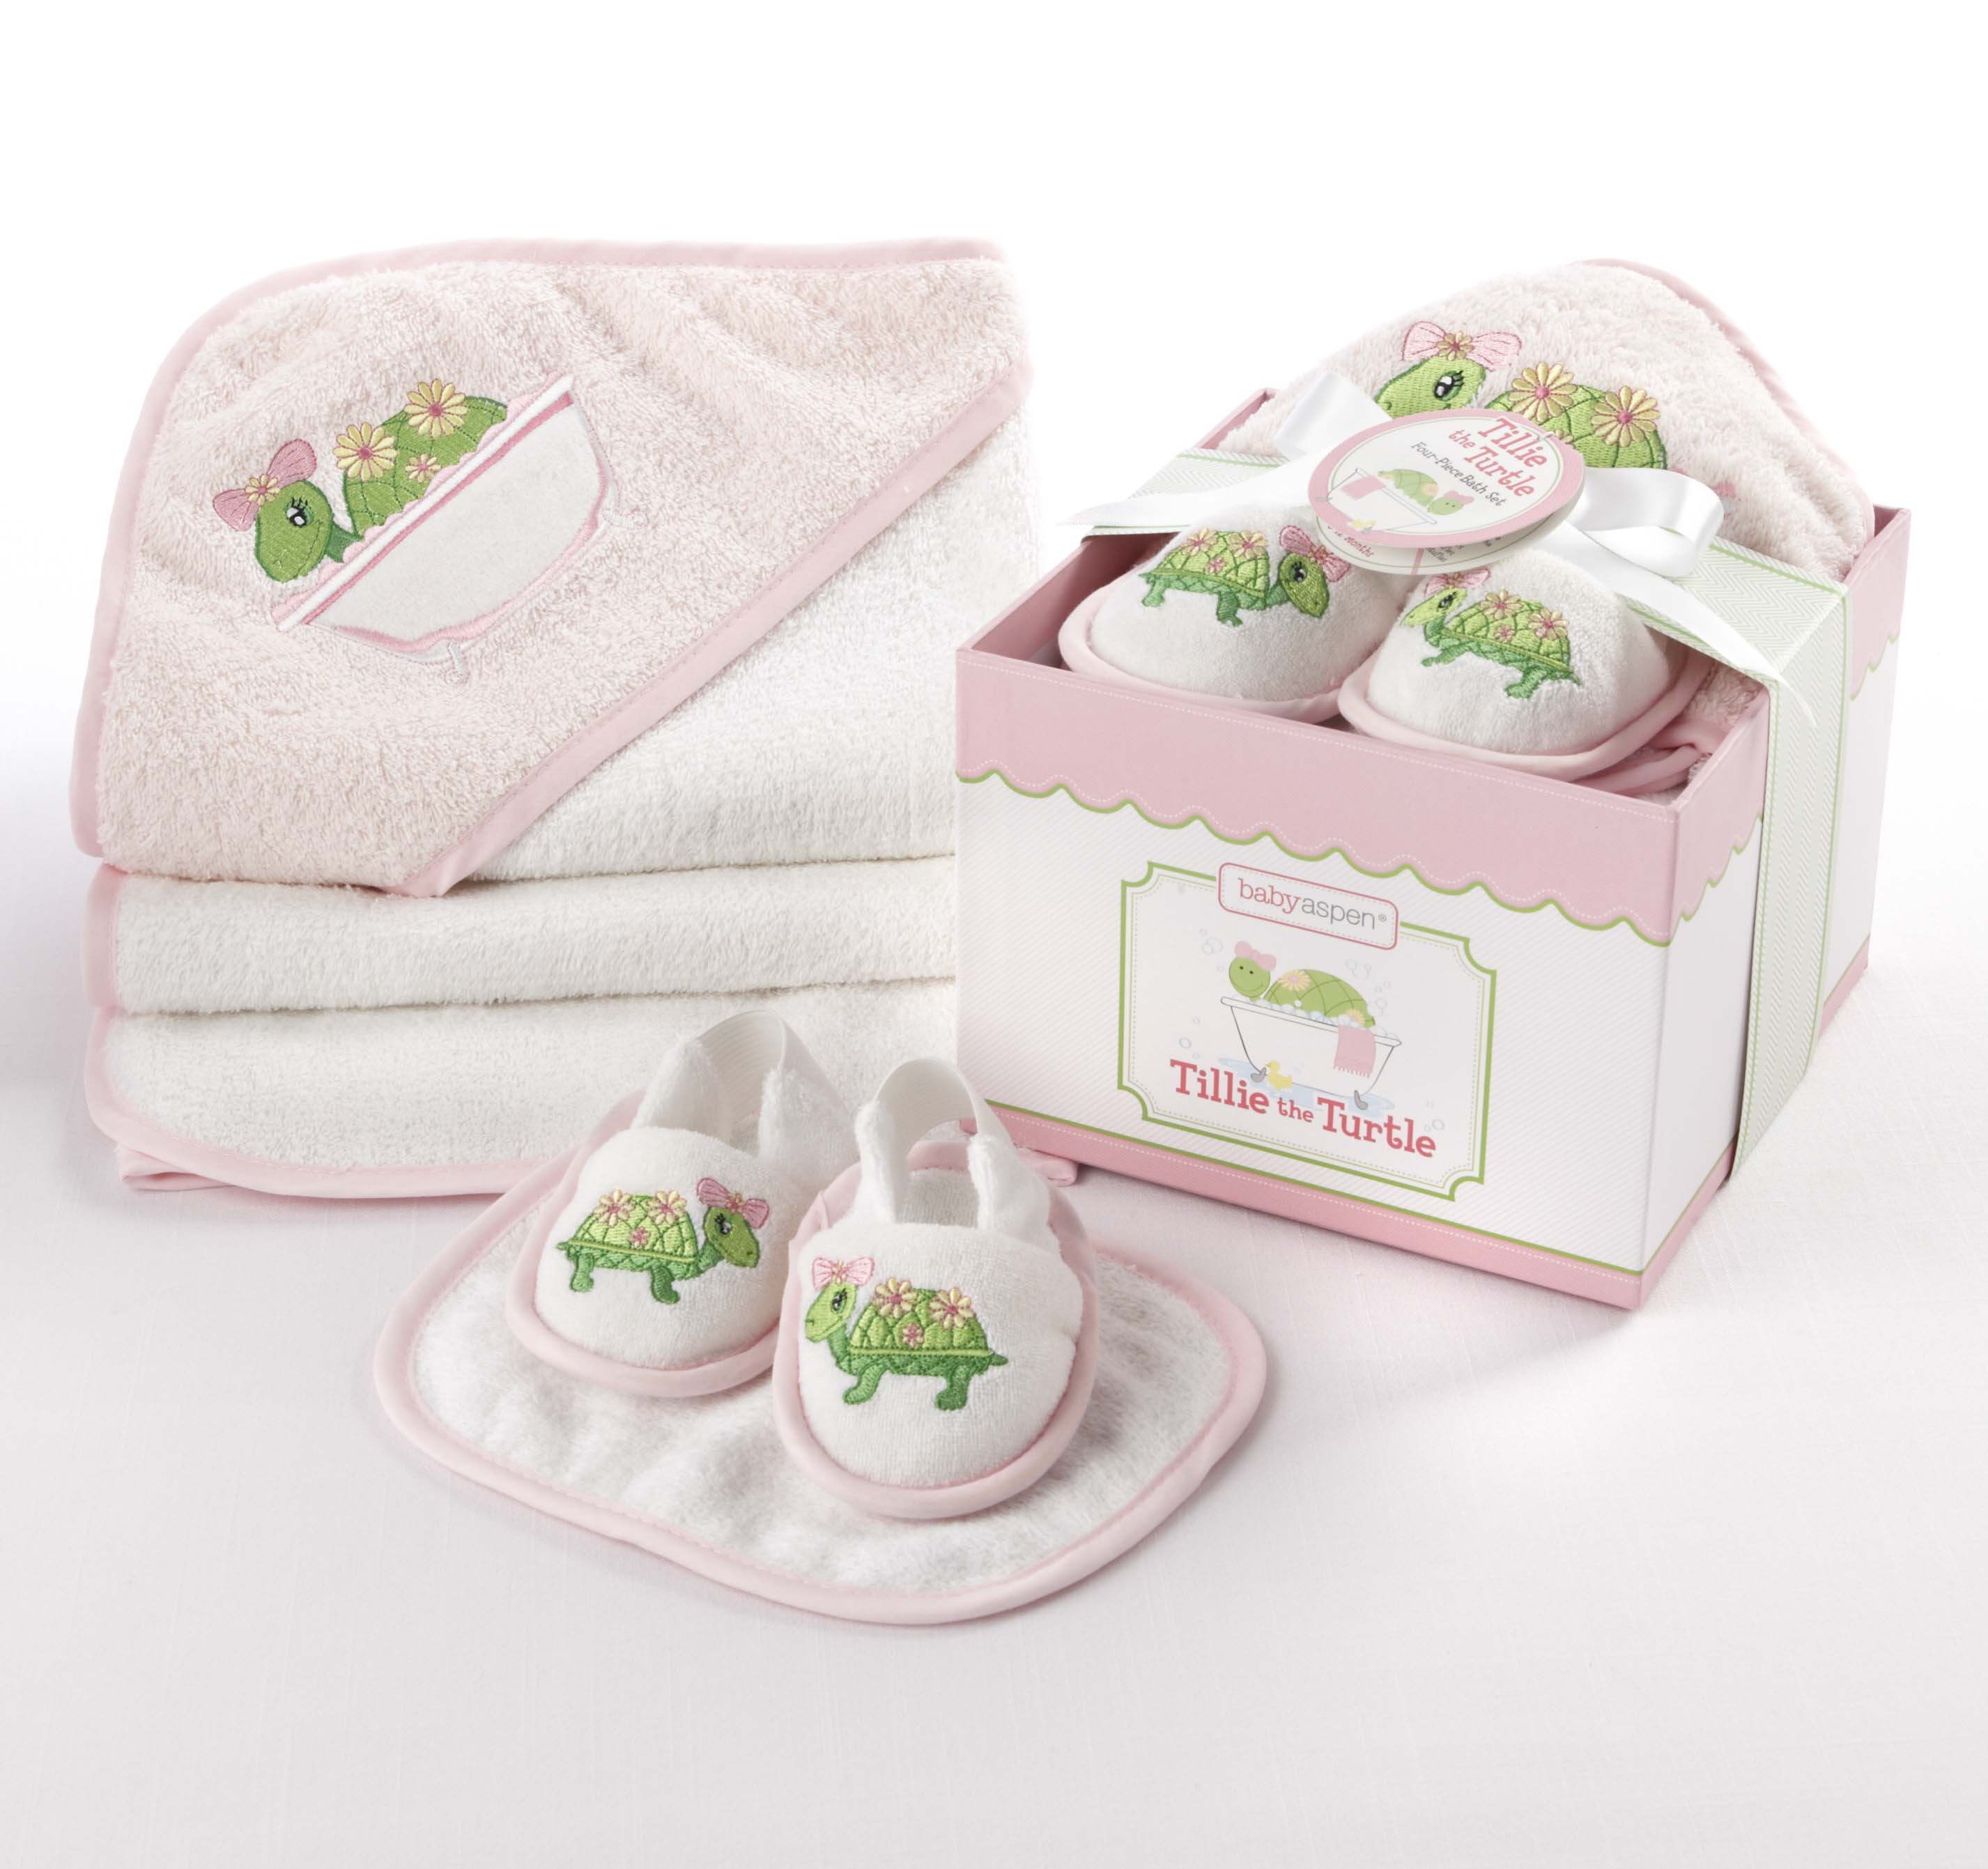 Baby Aspen 'Tillie the Turtle' 4-Piece Bath Time Gift Set